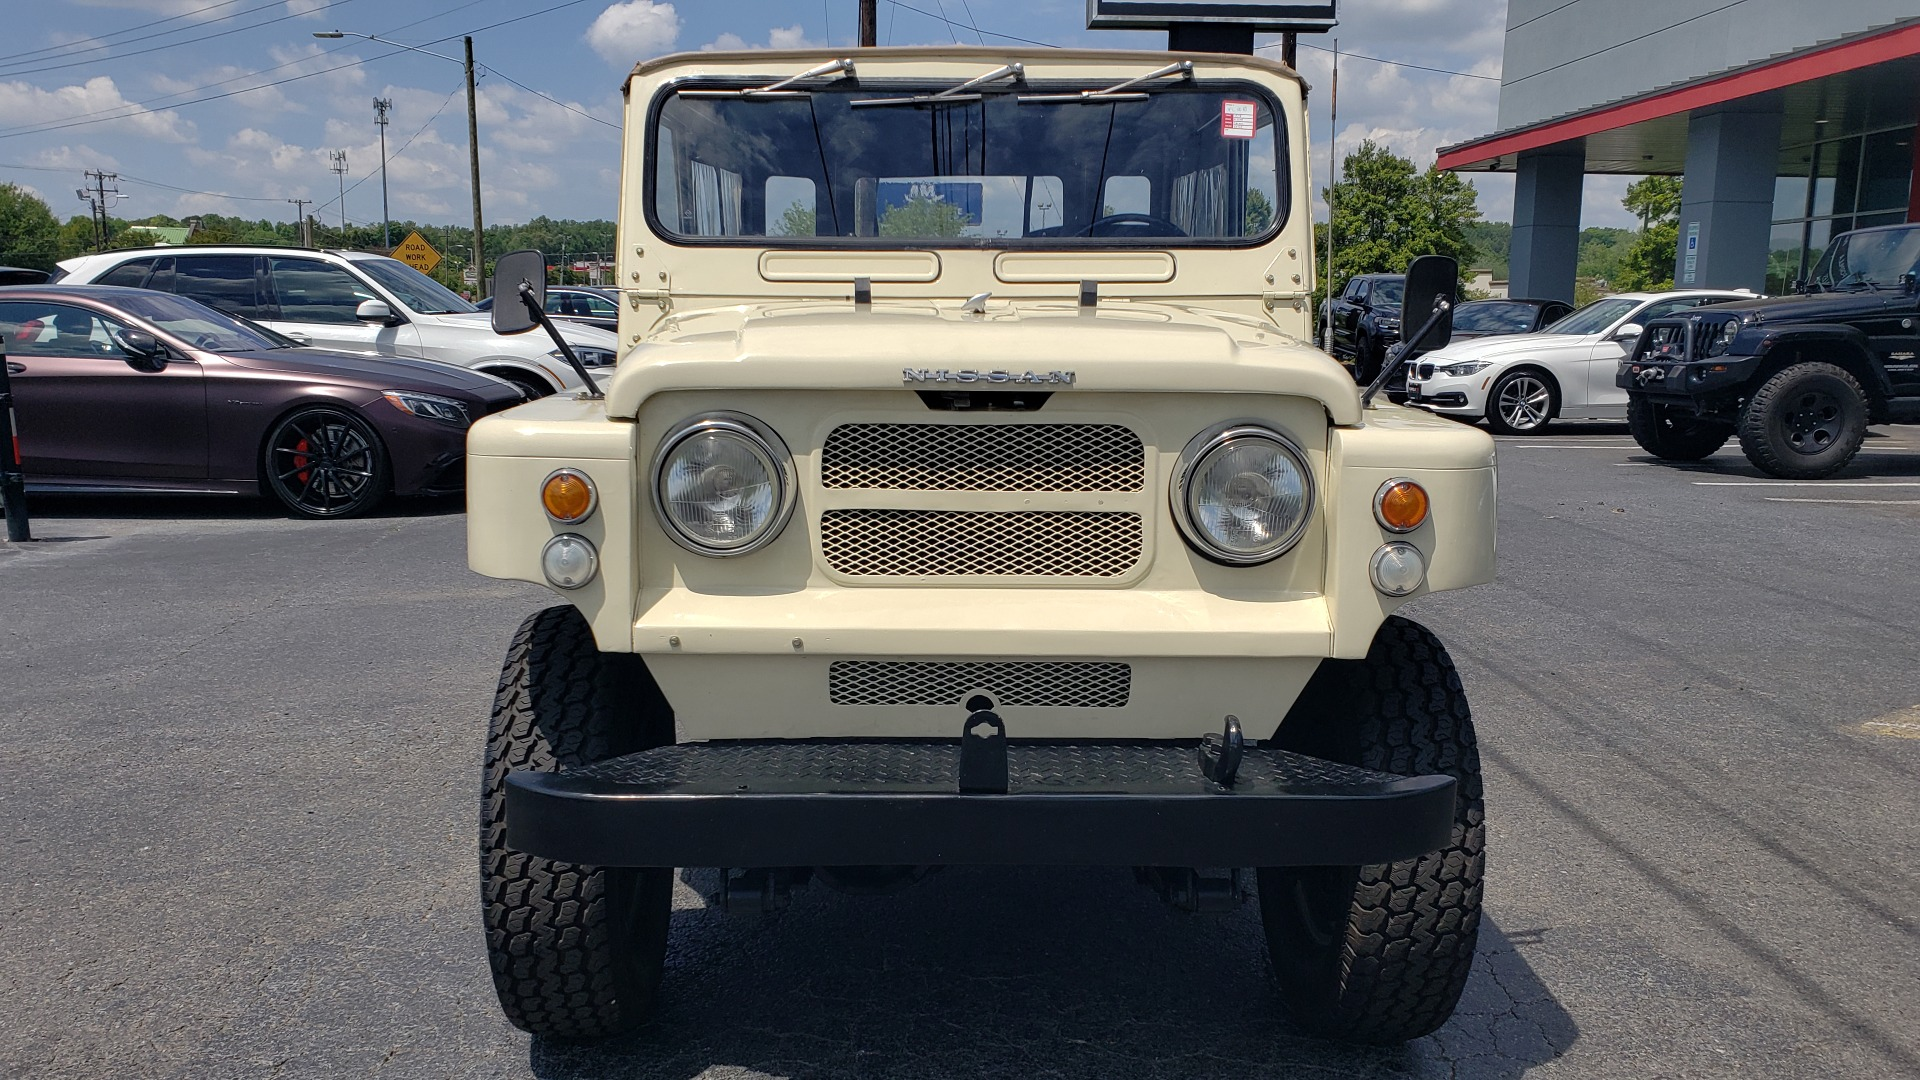 Used 1978 Nissan PATROL 4x4 / SOFT-TOP / 6-CYL / MANUAL / SEATS-9 / FULLY RESTORED for sale $32,400 at Formula Imports in Charlotte NC 28227 7